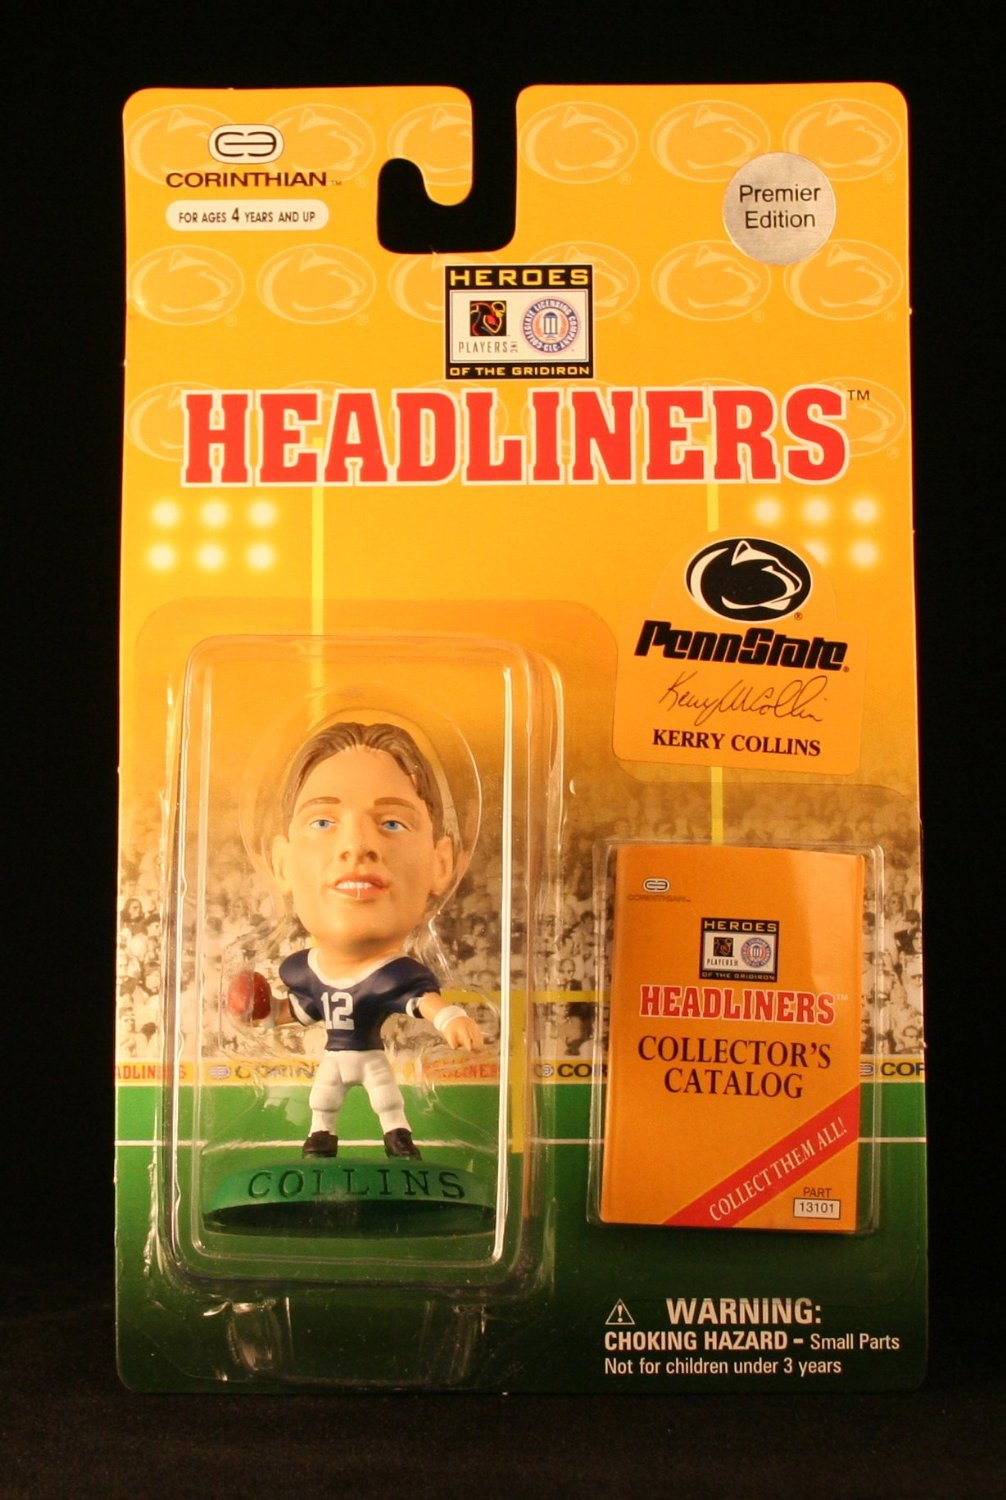 KERRY COLLINS / PENN STATE UNIVERSITY NITTANY LIONS * 3 INCH * 1996 NFL Heroes of the Gridiron * Premier Edition * Headliners Football Collector Figure